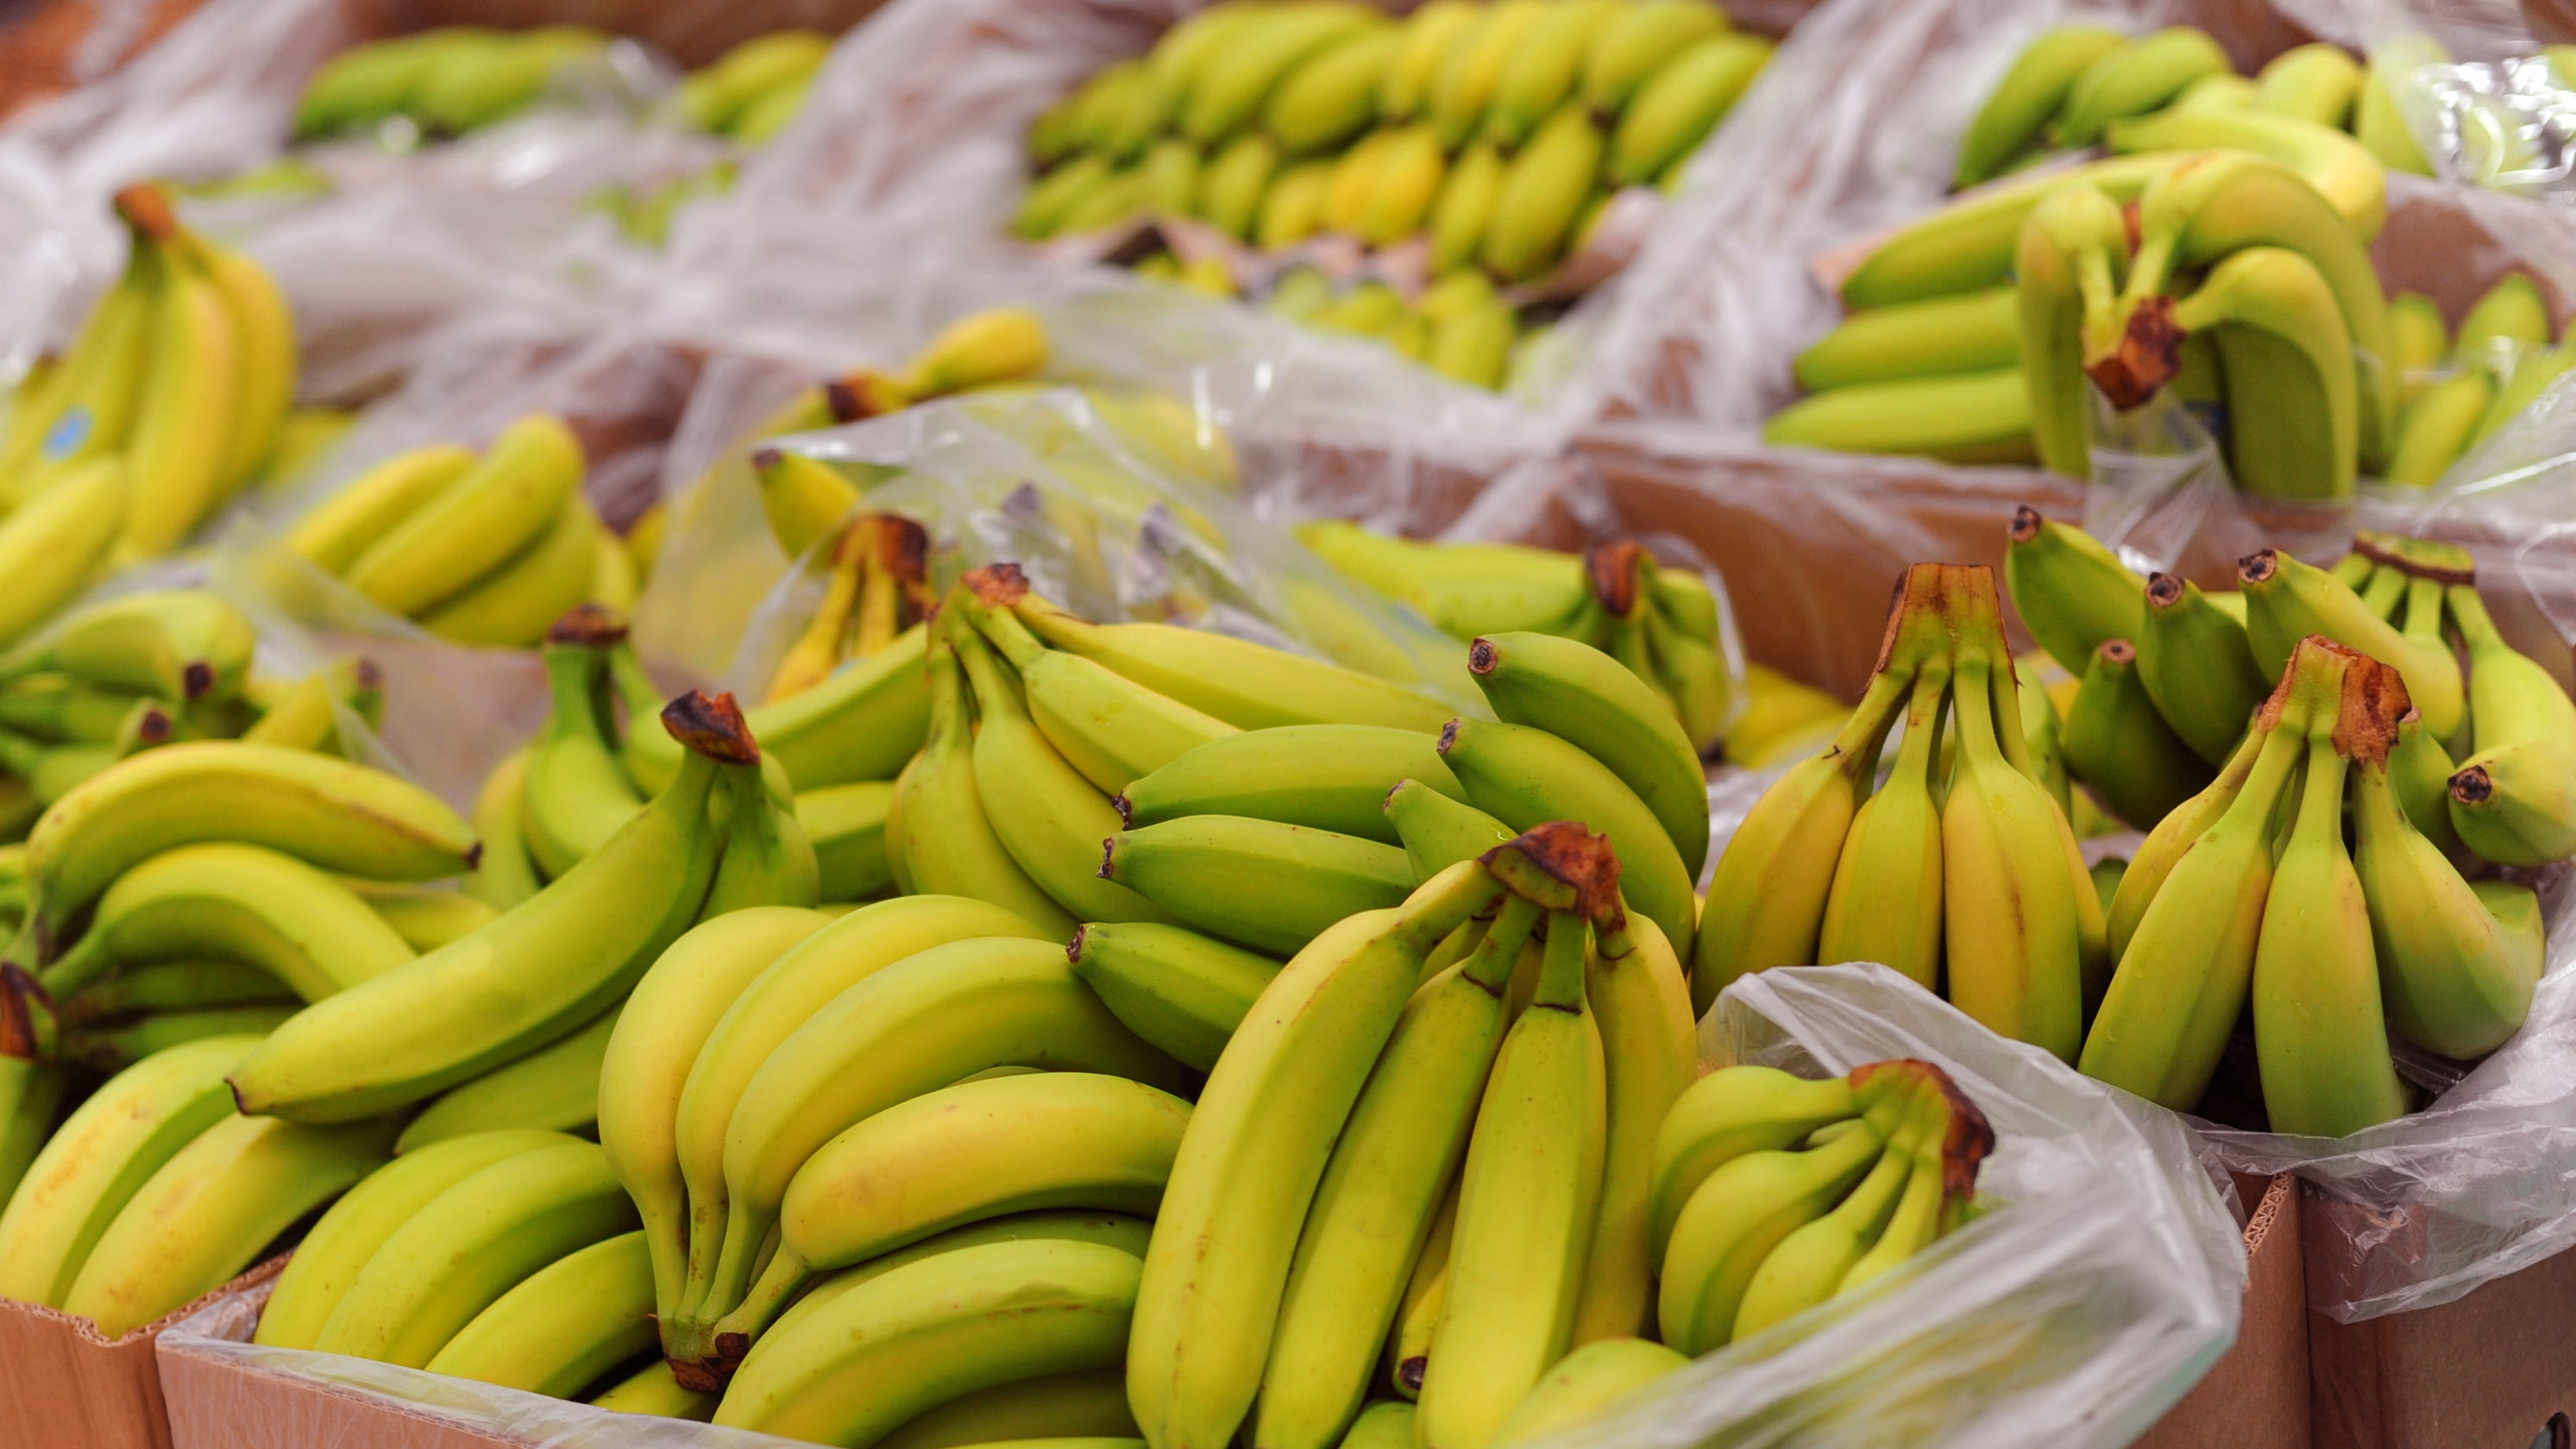 Cocaine stash worth more than $1M found in banana boxes at Washington grocery stores